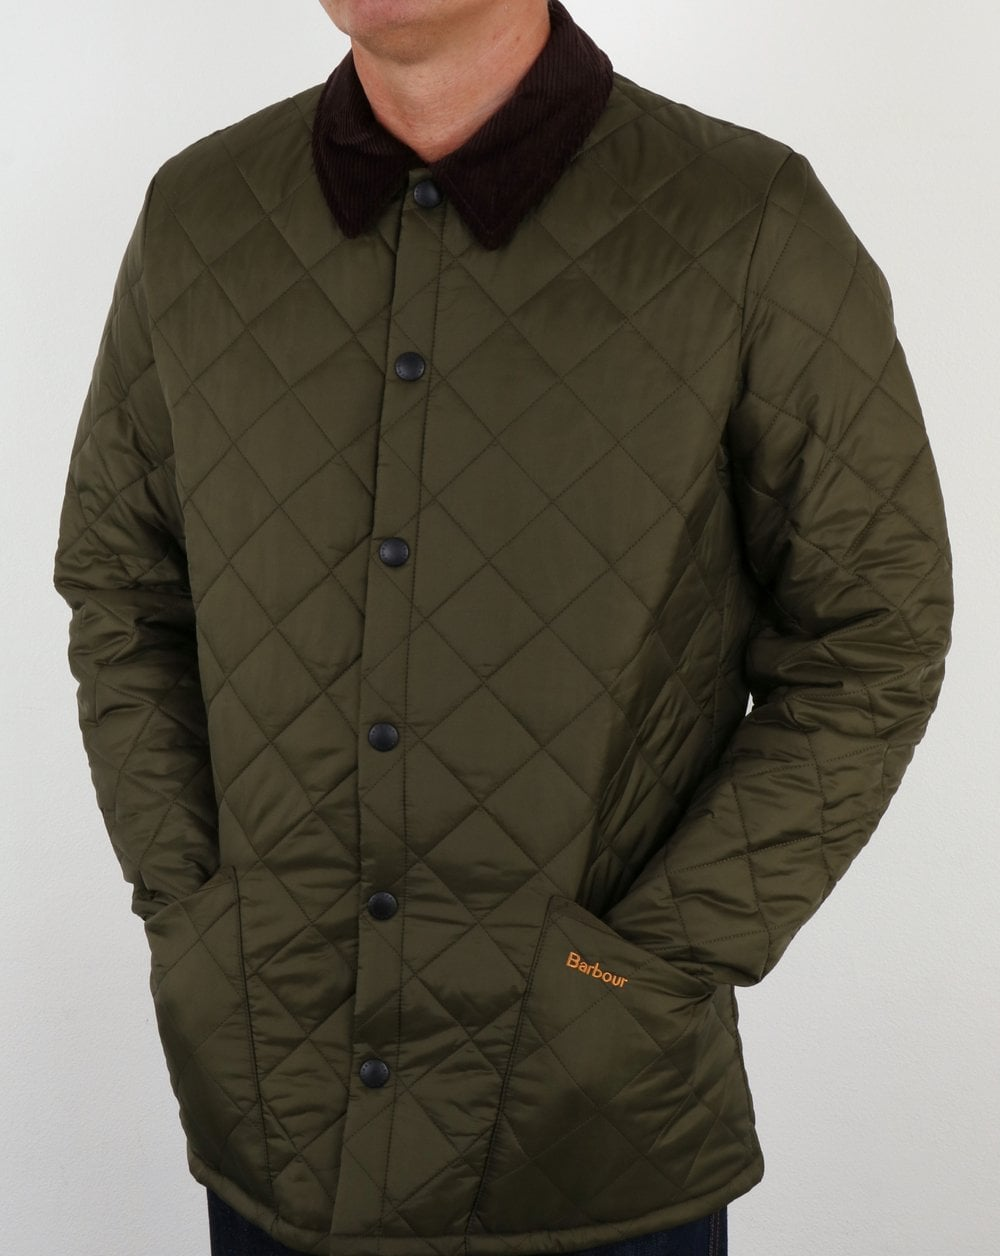 Barbour Barbour Heritage Classic Quilted Jacket Olive 9d93ffc308